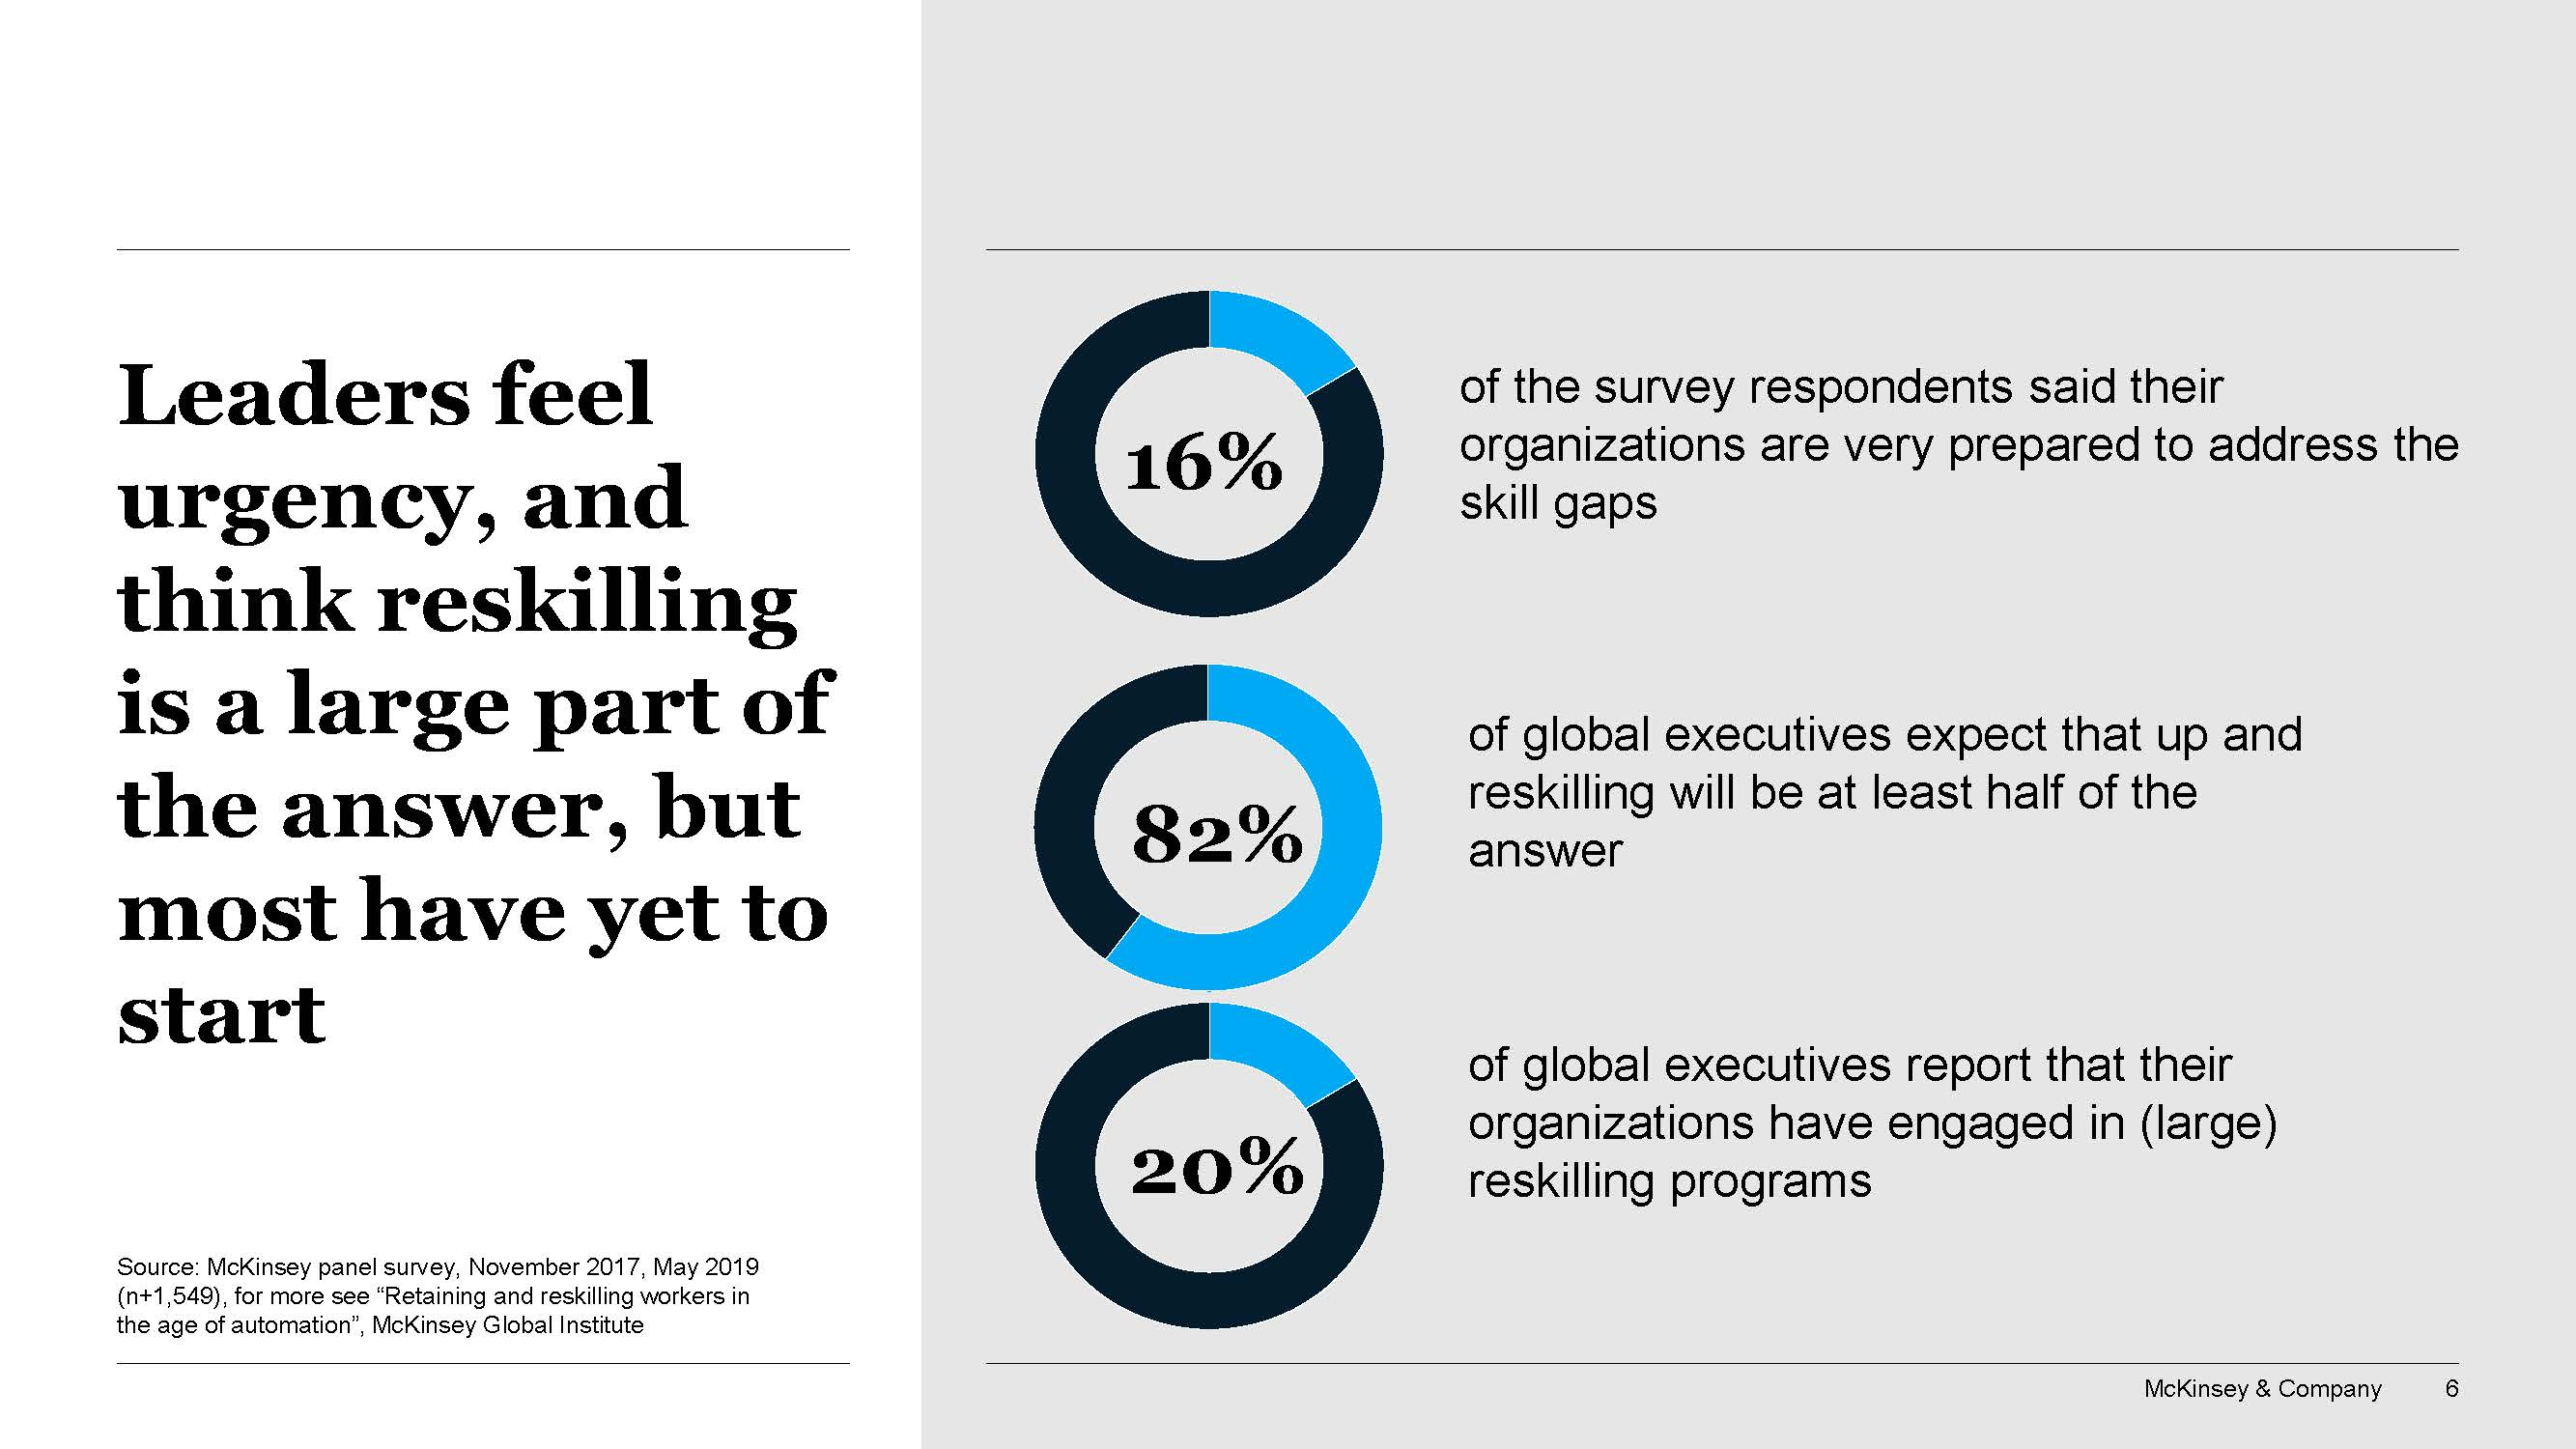 McKinsey Retaining and reskilling workers in the age of automation survey results